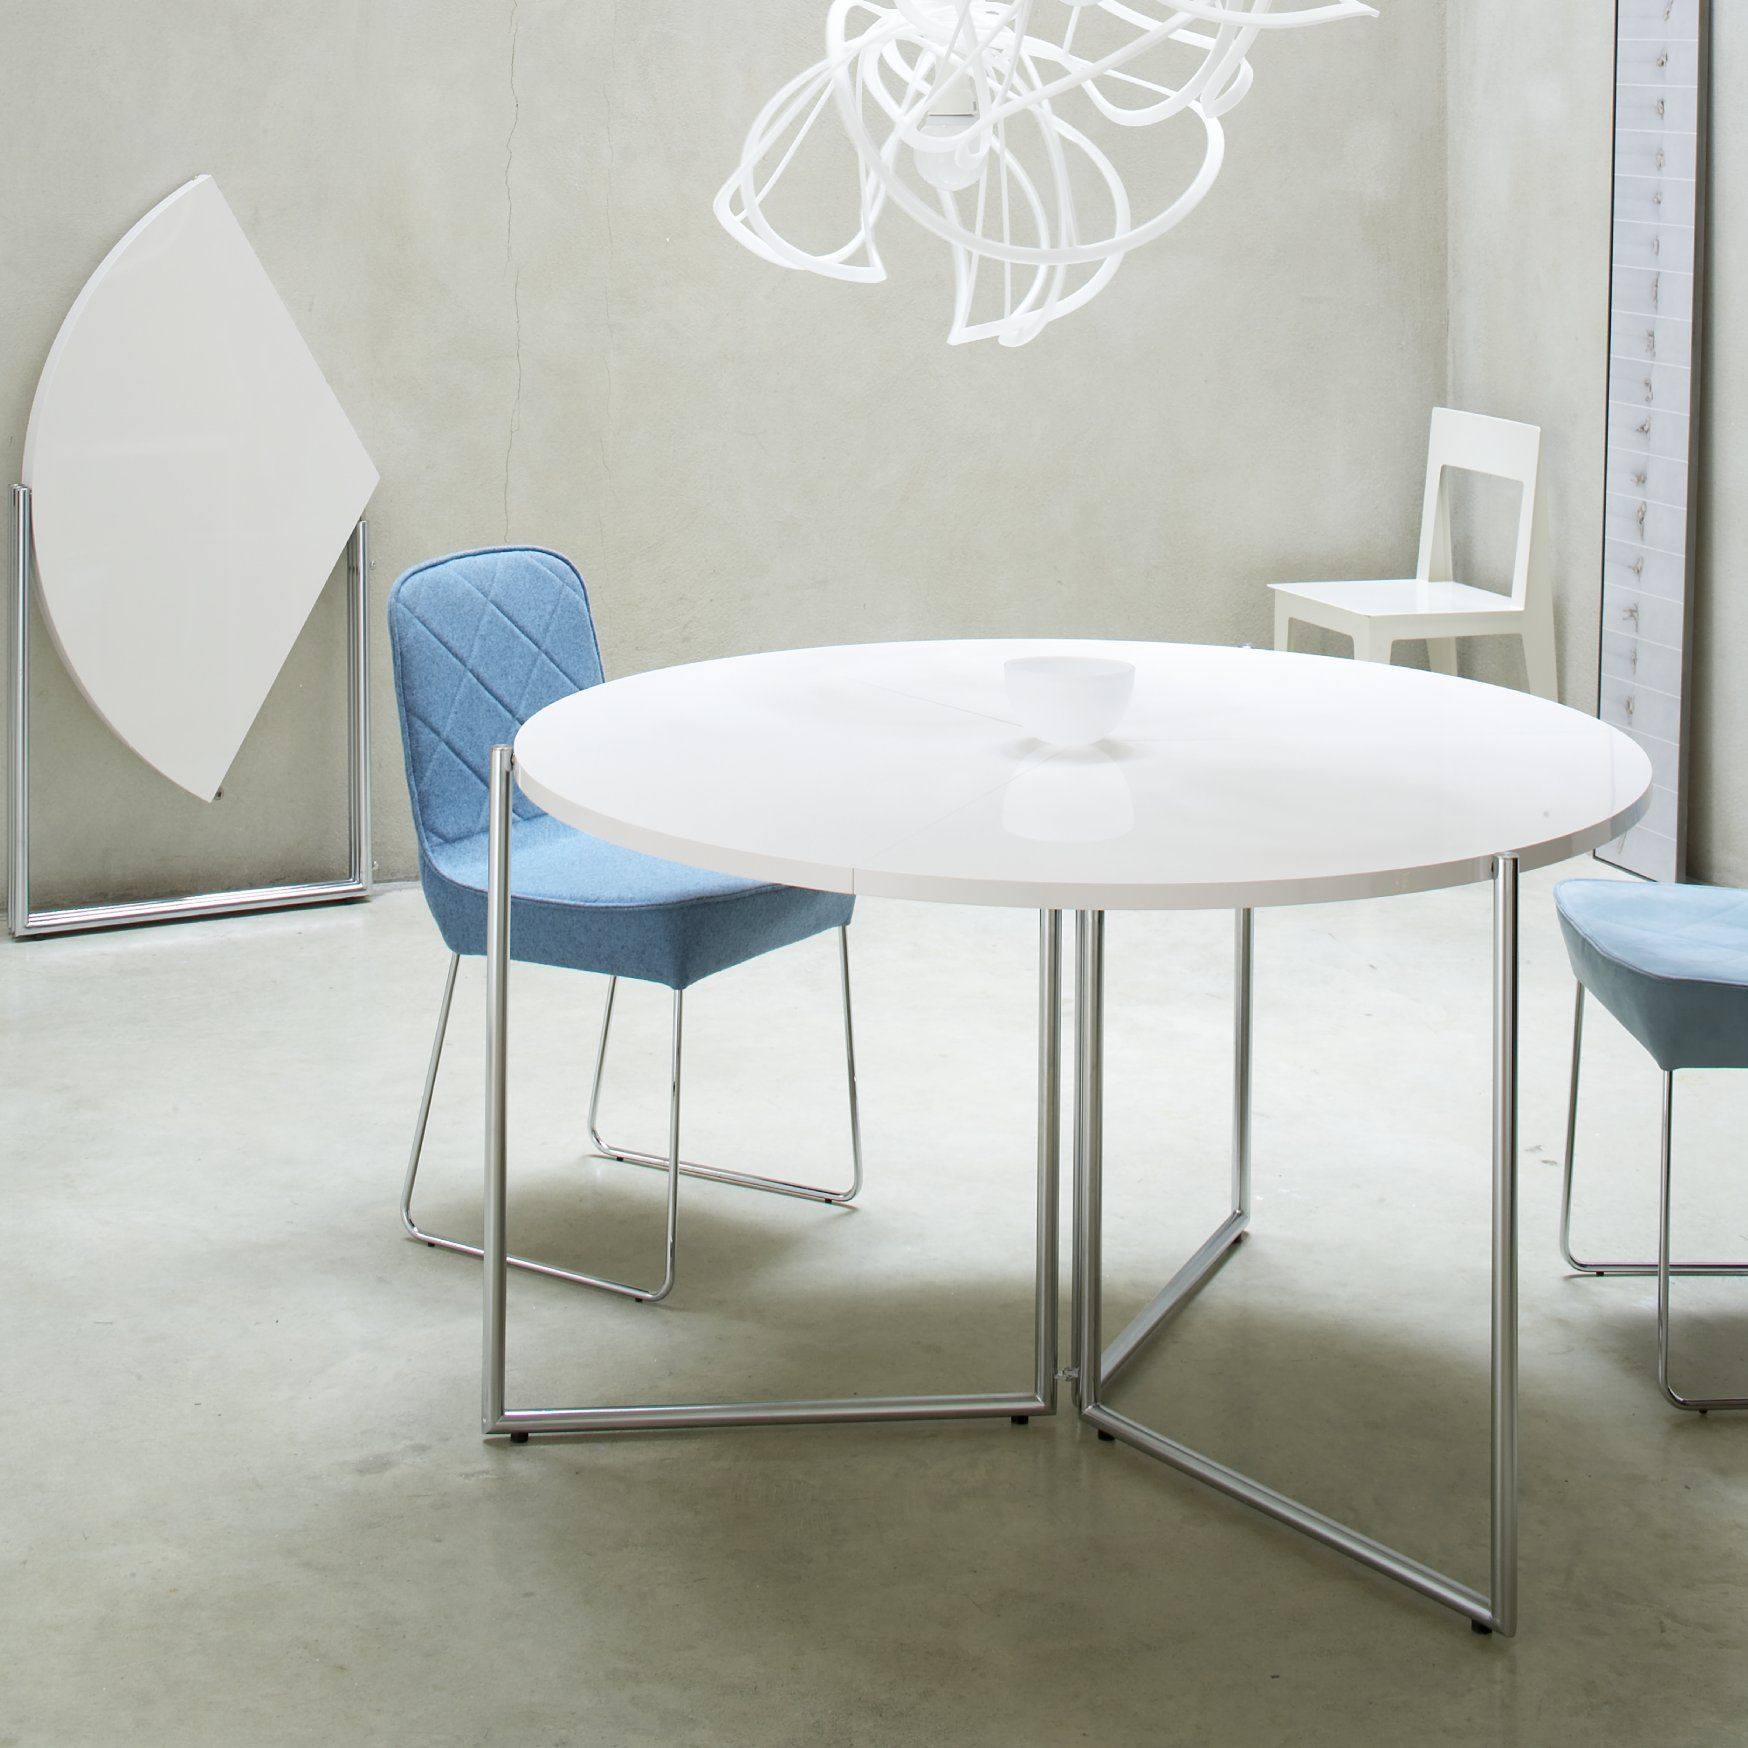 Dressy by delo lindo f dining table by nils frederking seasonal